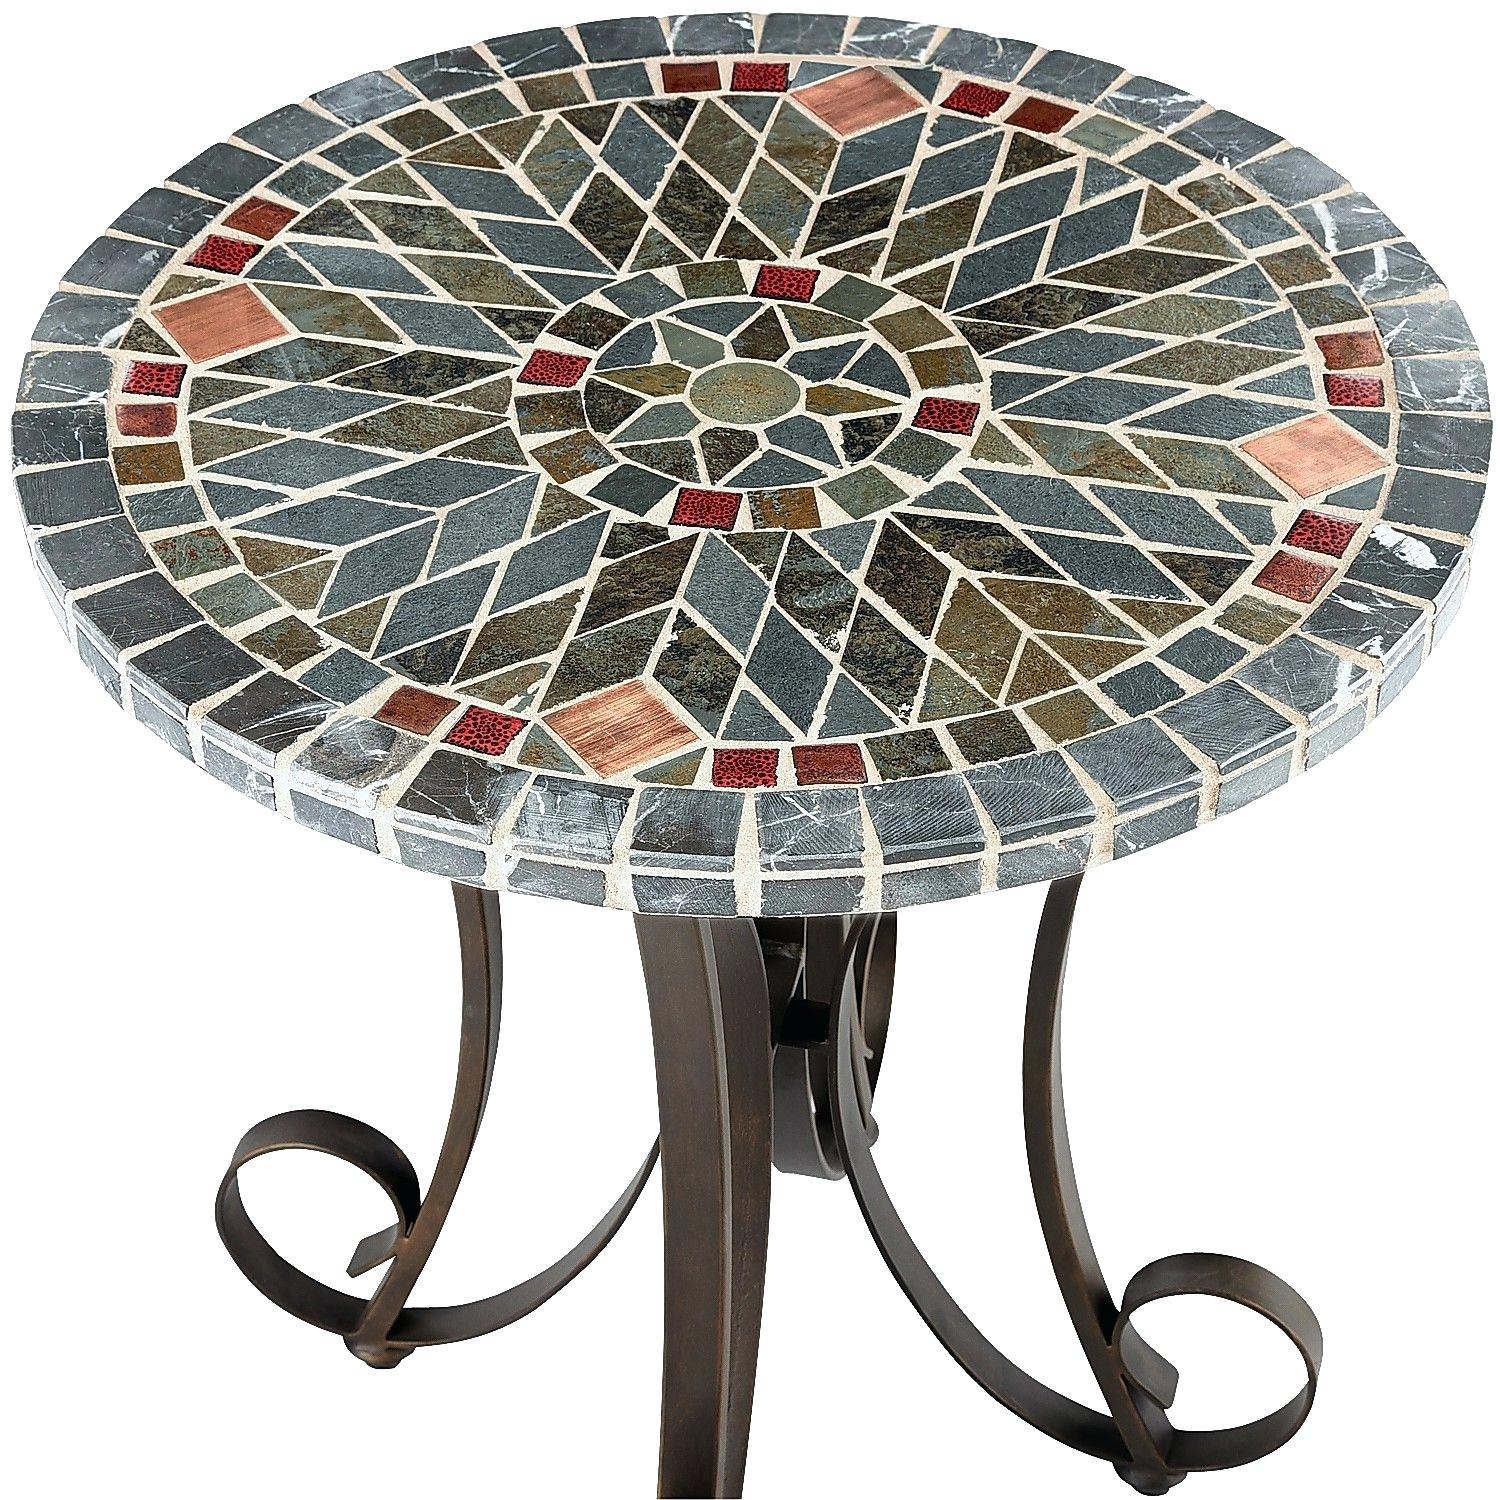 save this item pier accent tables mosaic table lavorochogan info kenzie tile outdoor gateleg lucite coffee round patio and chairs cover chests consoles gold leaf the uttermost